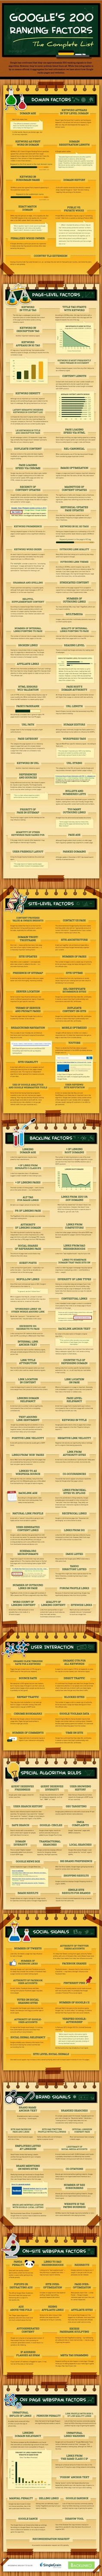 All you need to know about the SEO Ranking Factors for Google in 2014 [Infographic]